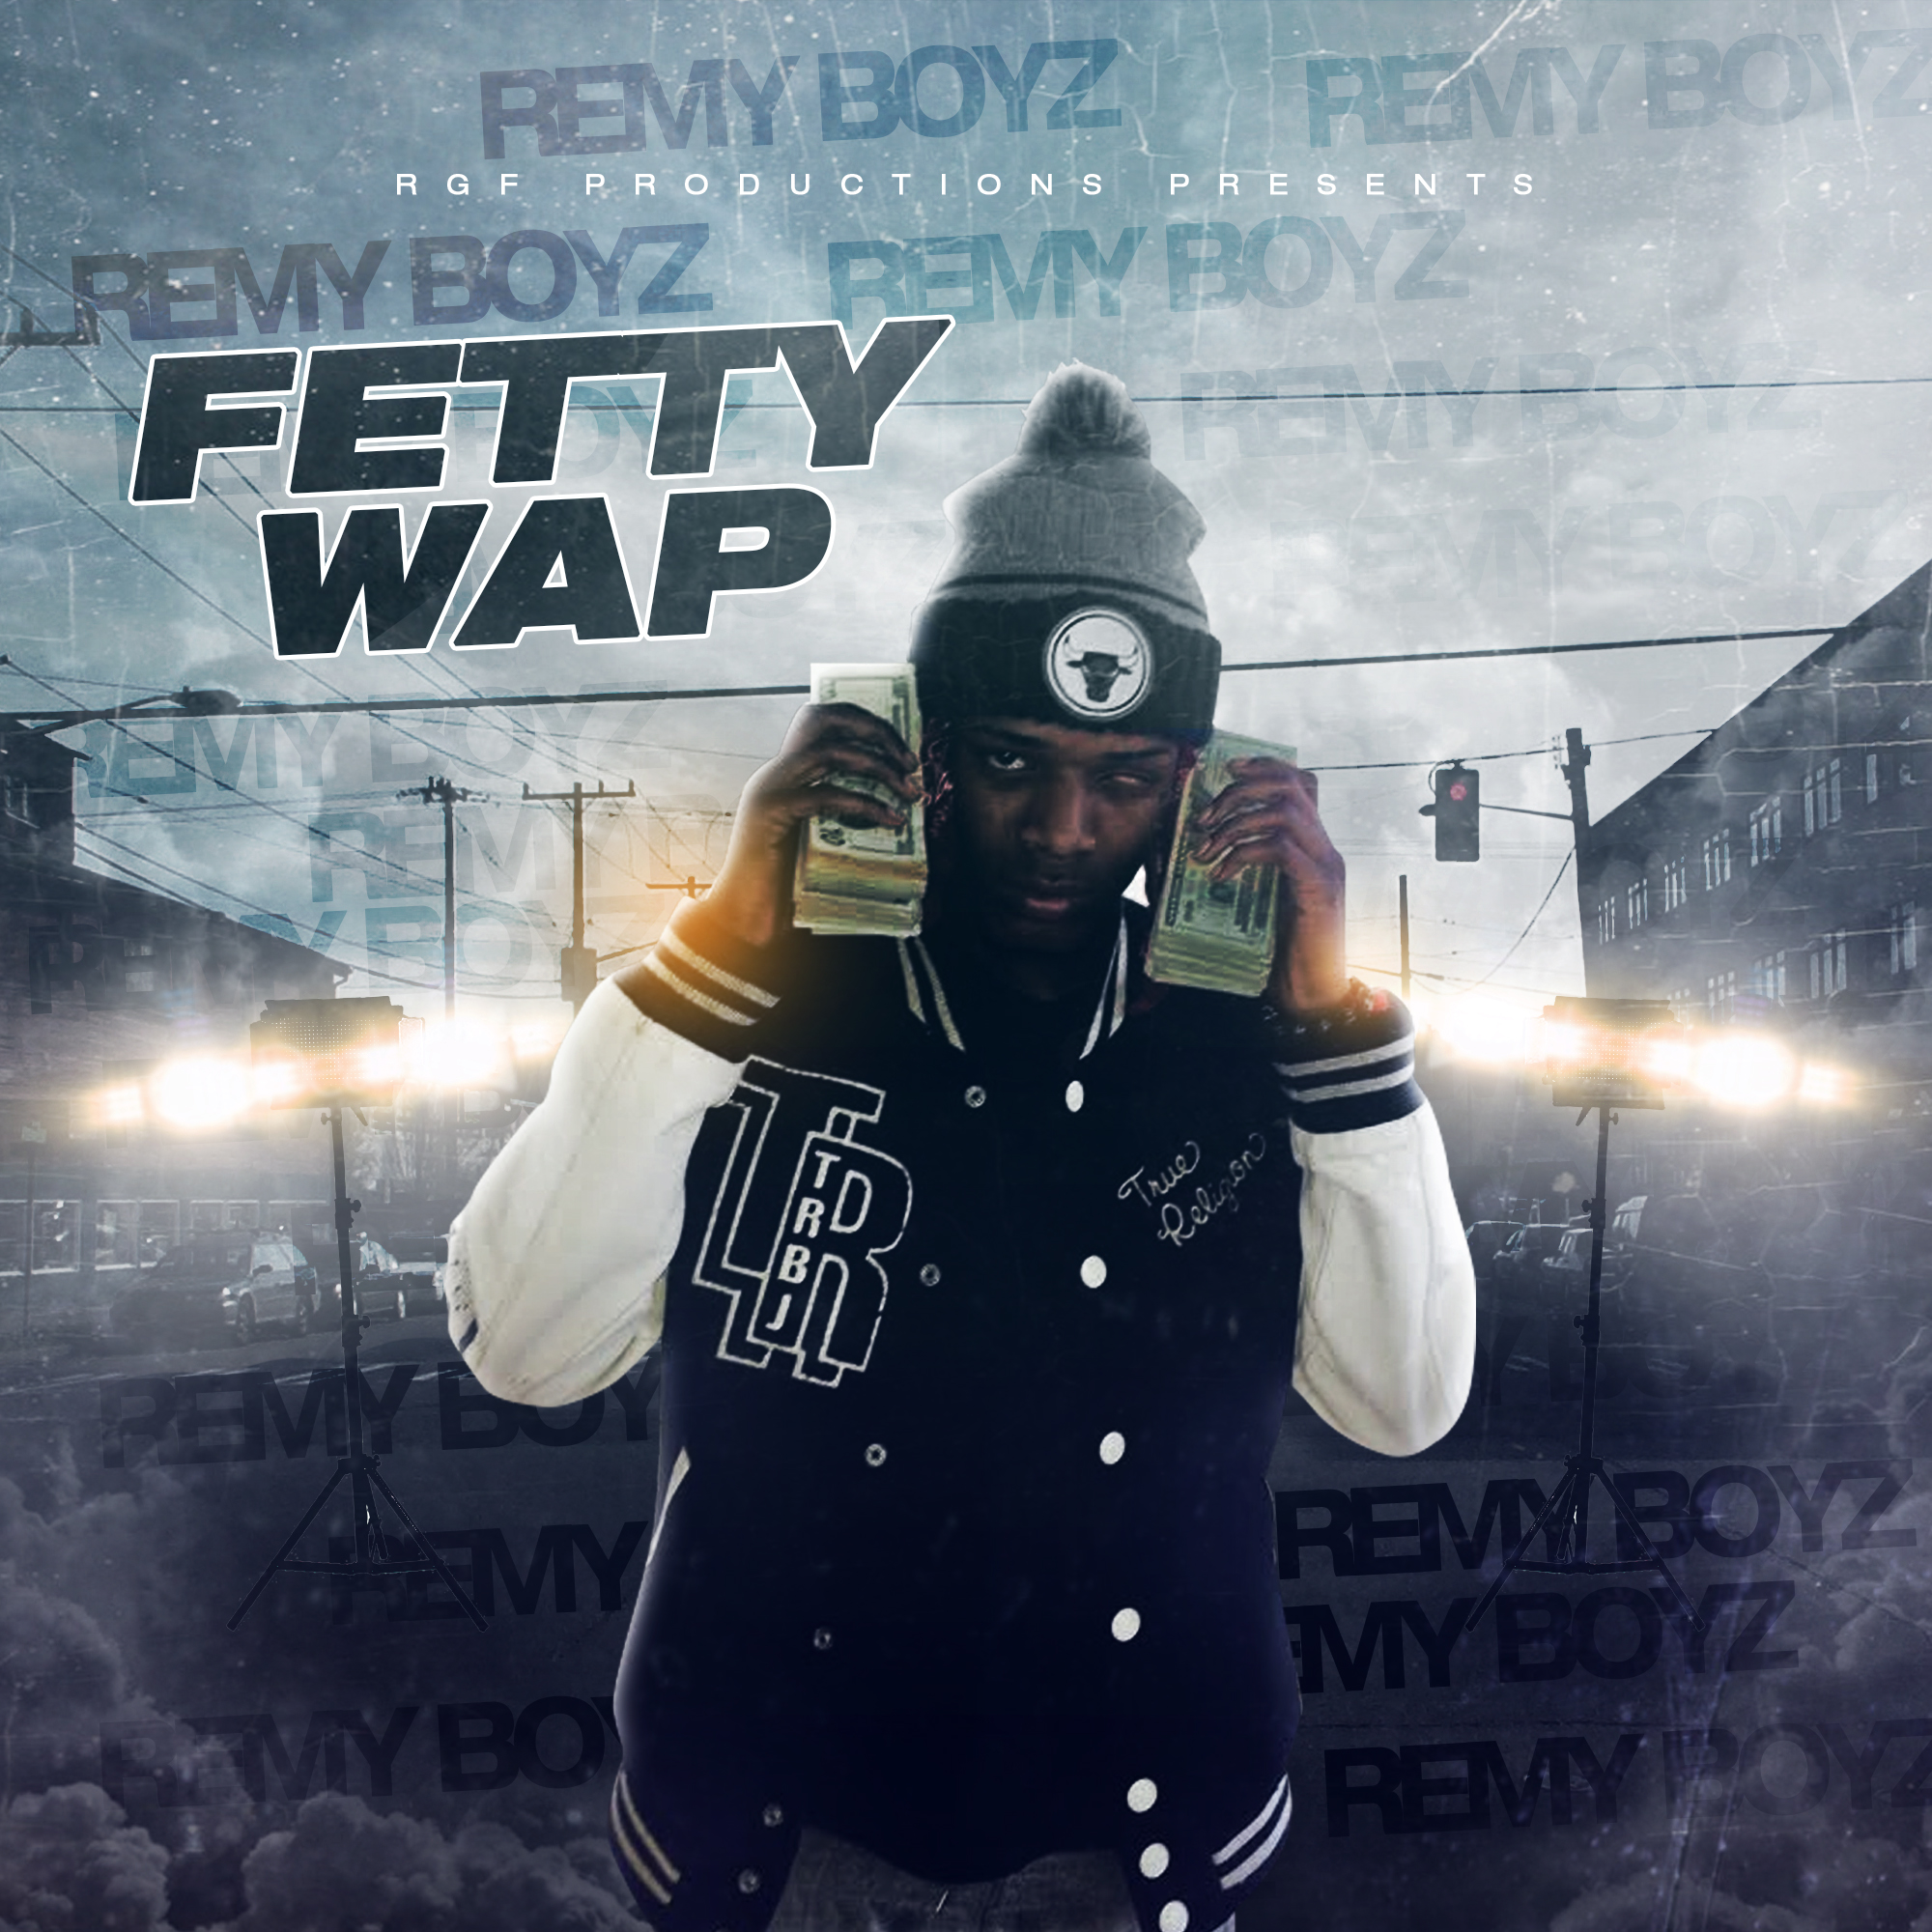 Fetty Wap & Remy Boyz – How We Do Thangs